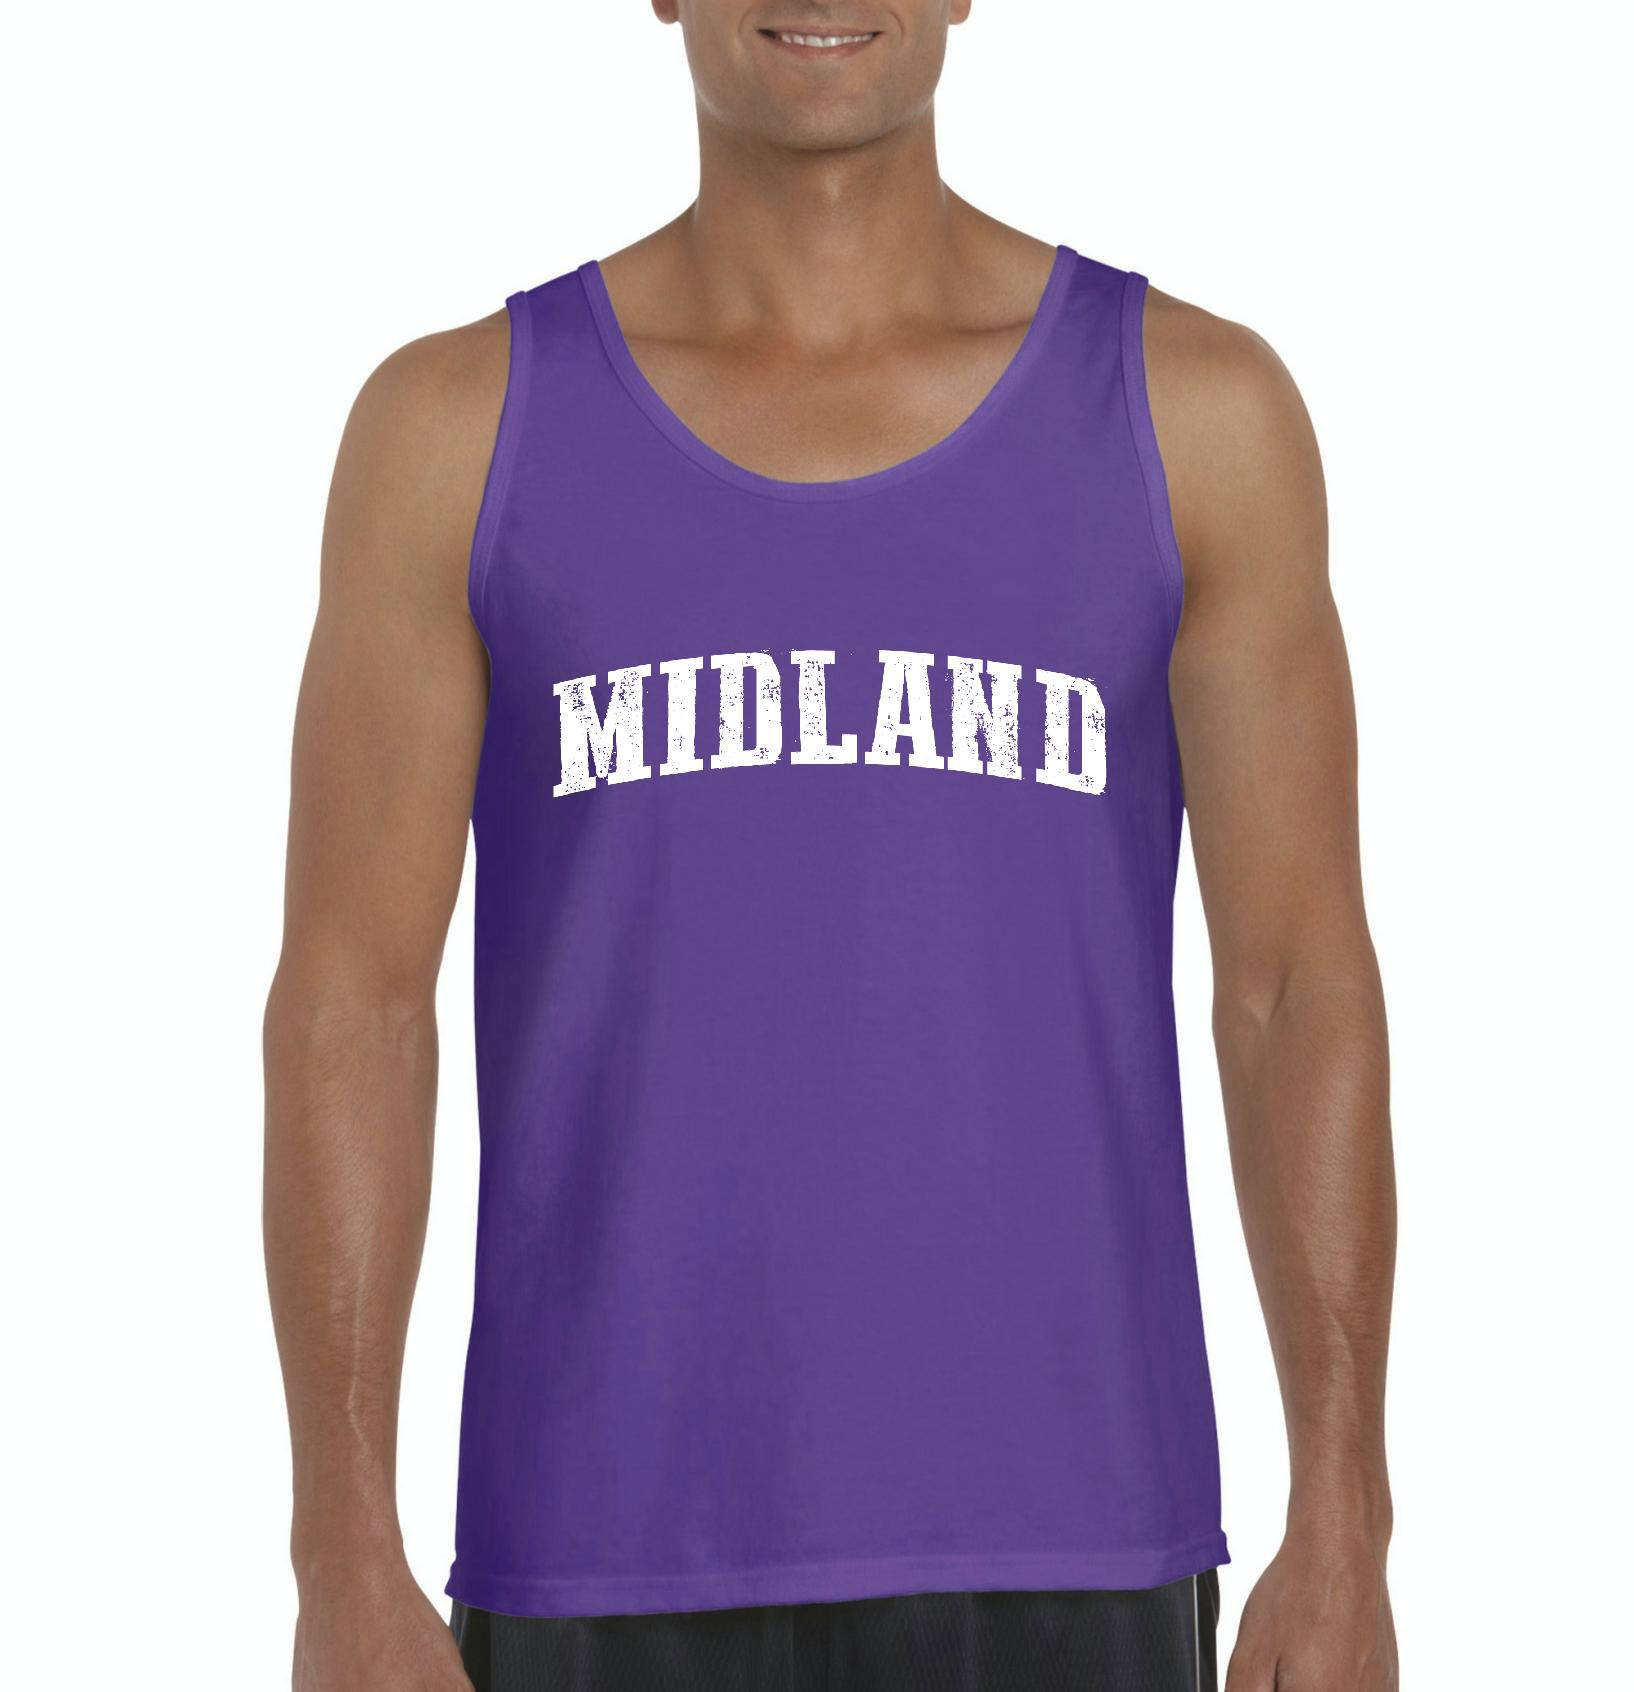 Midland TX Texas Flag Houston Map Longhorns Bobcats Home Texas State University Mens Tanks